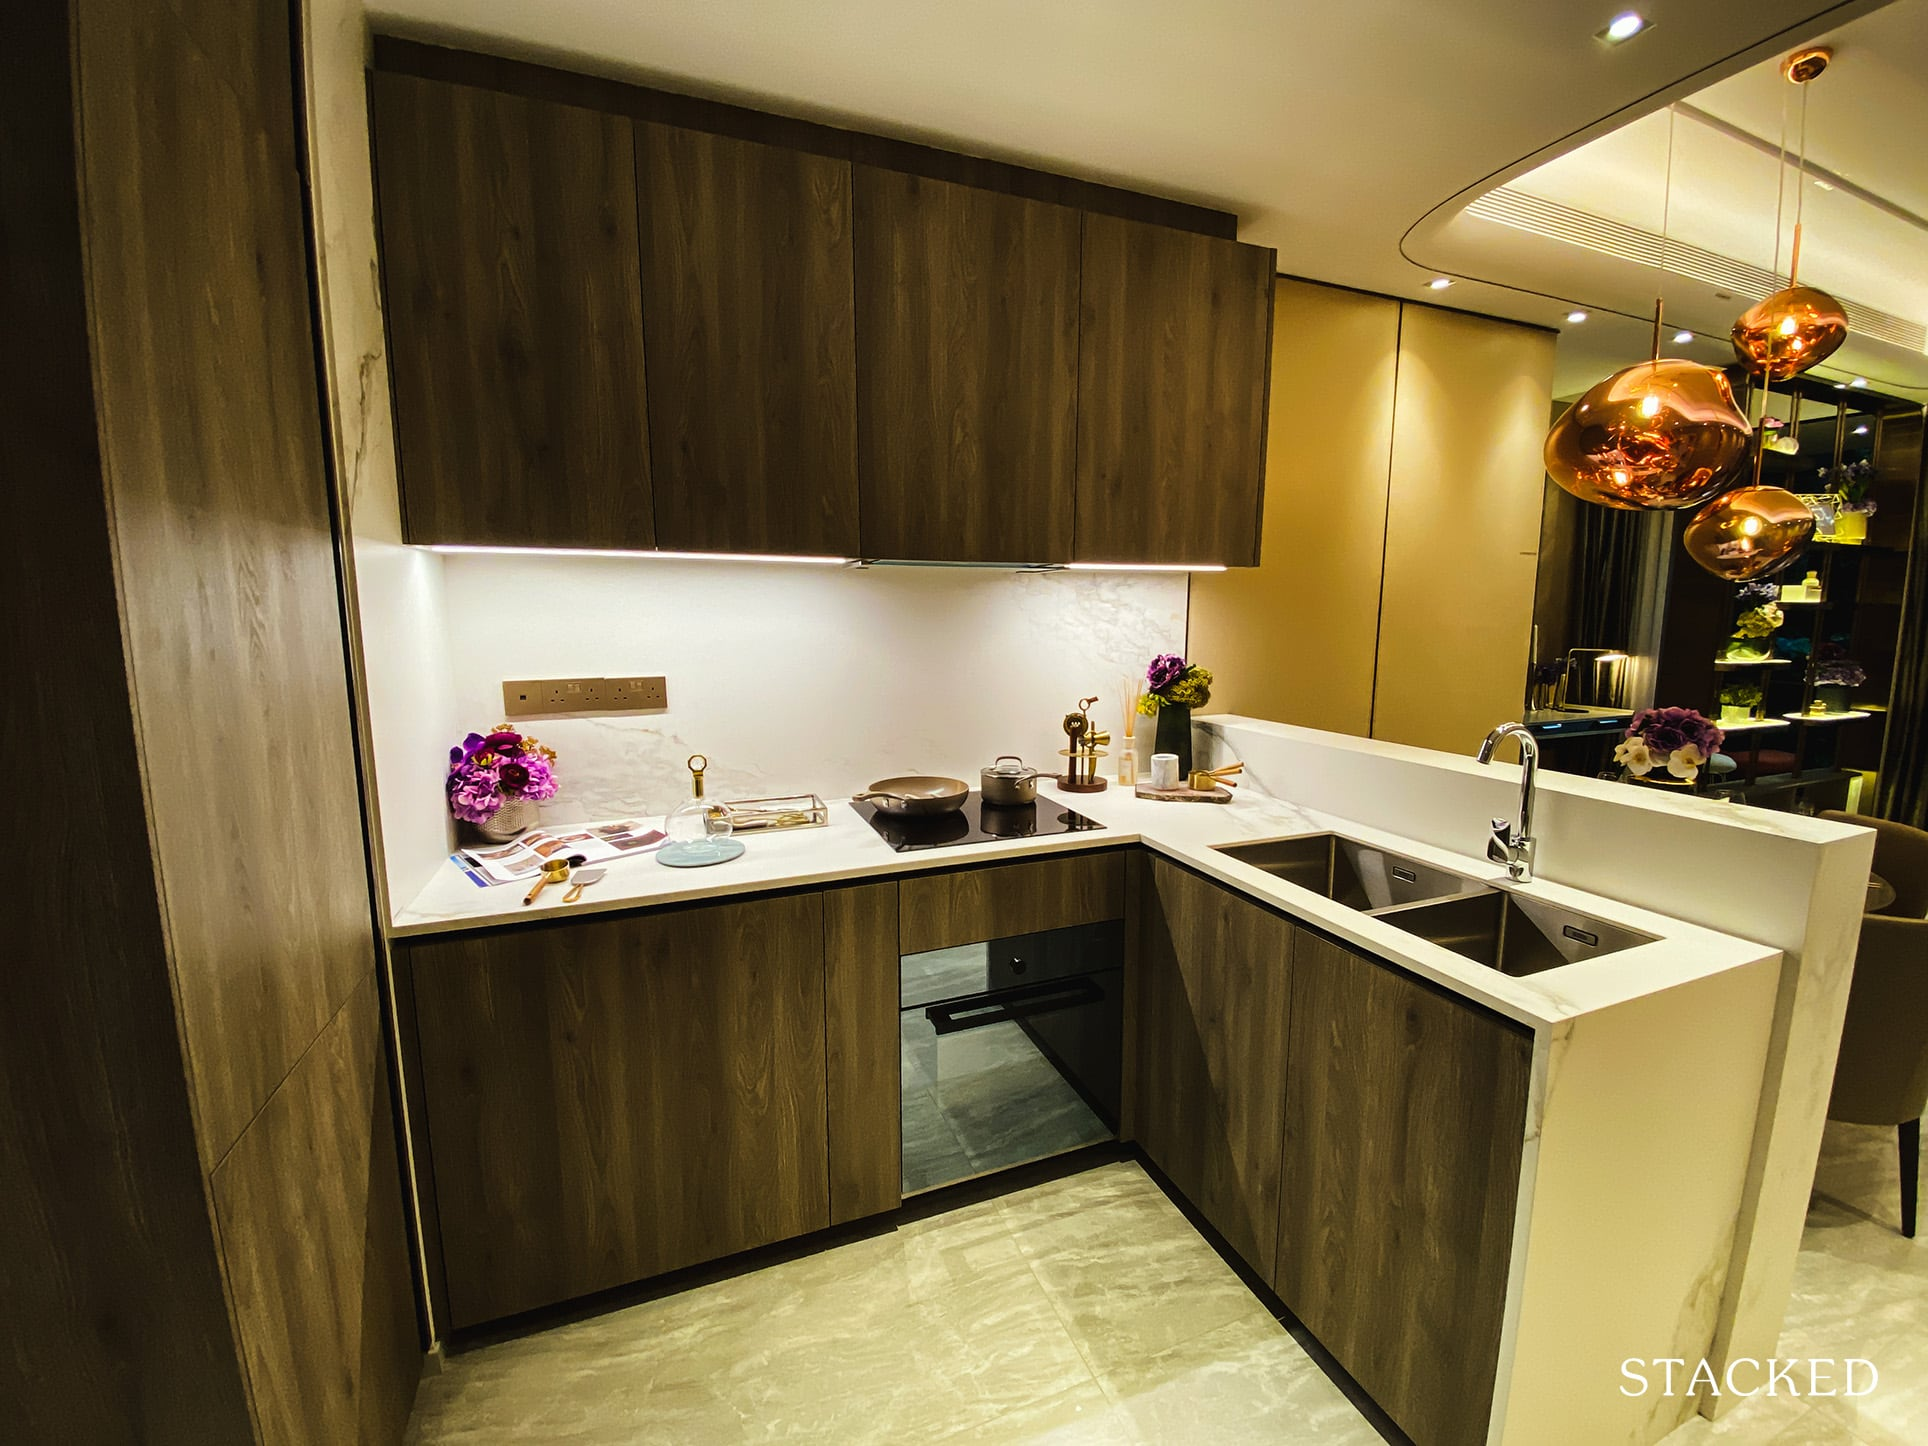 leedon green 2 bedroom kitchen